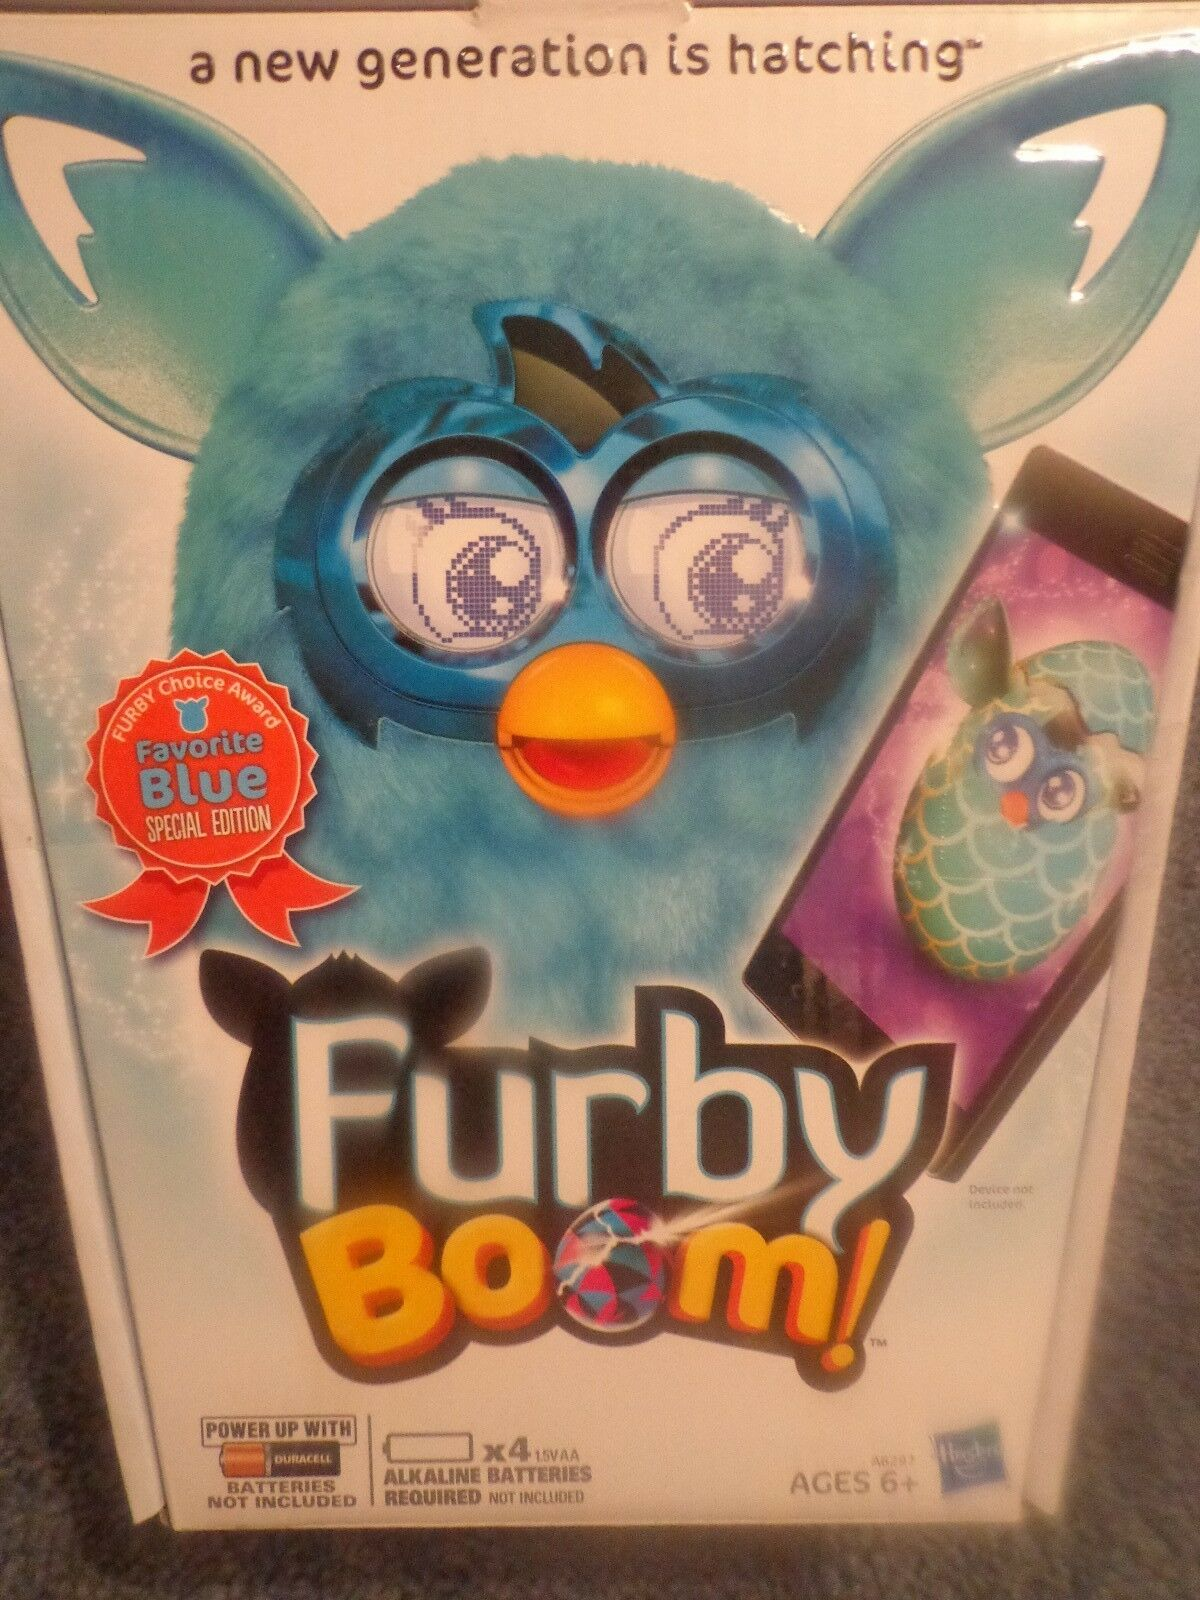 TOP TOY 2013 - FURBY BOOM FIGURE - Choice Award Favorite bluee Special Edition